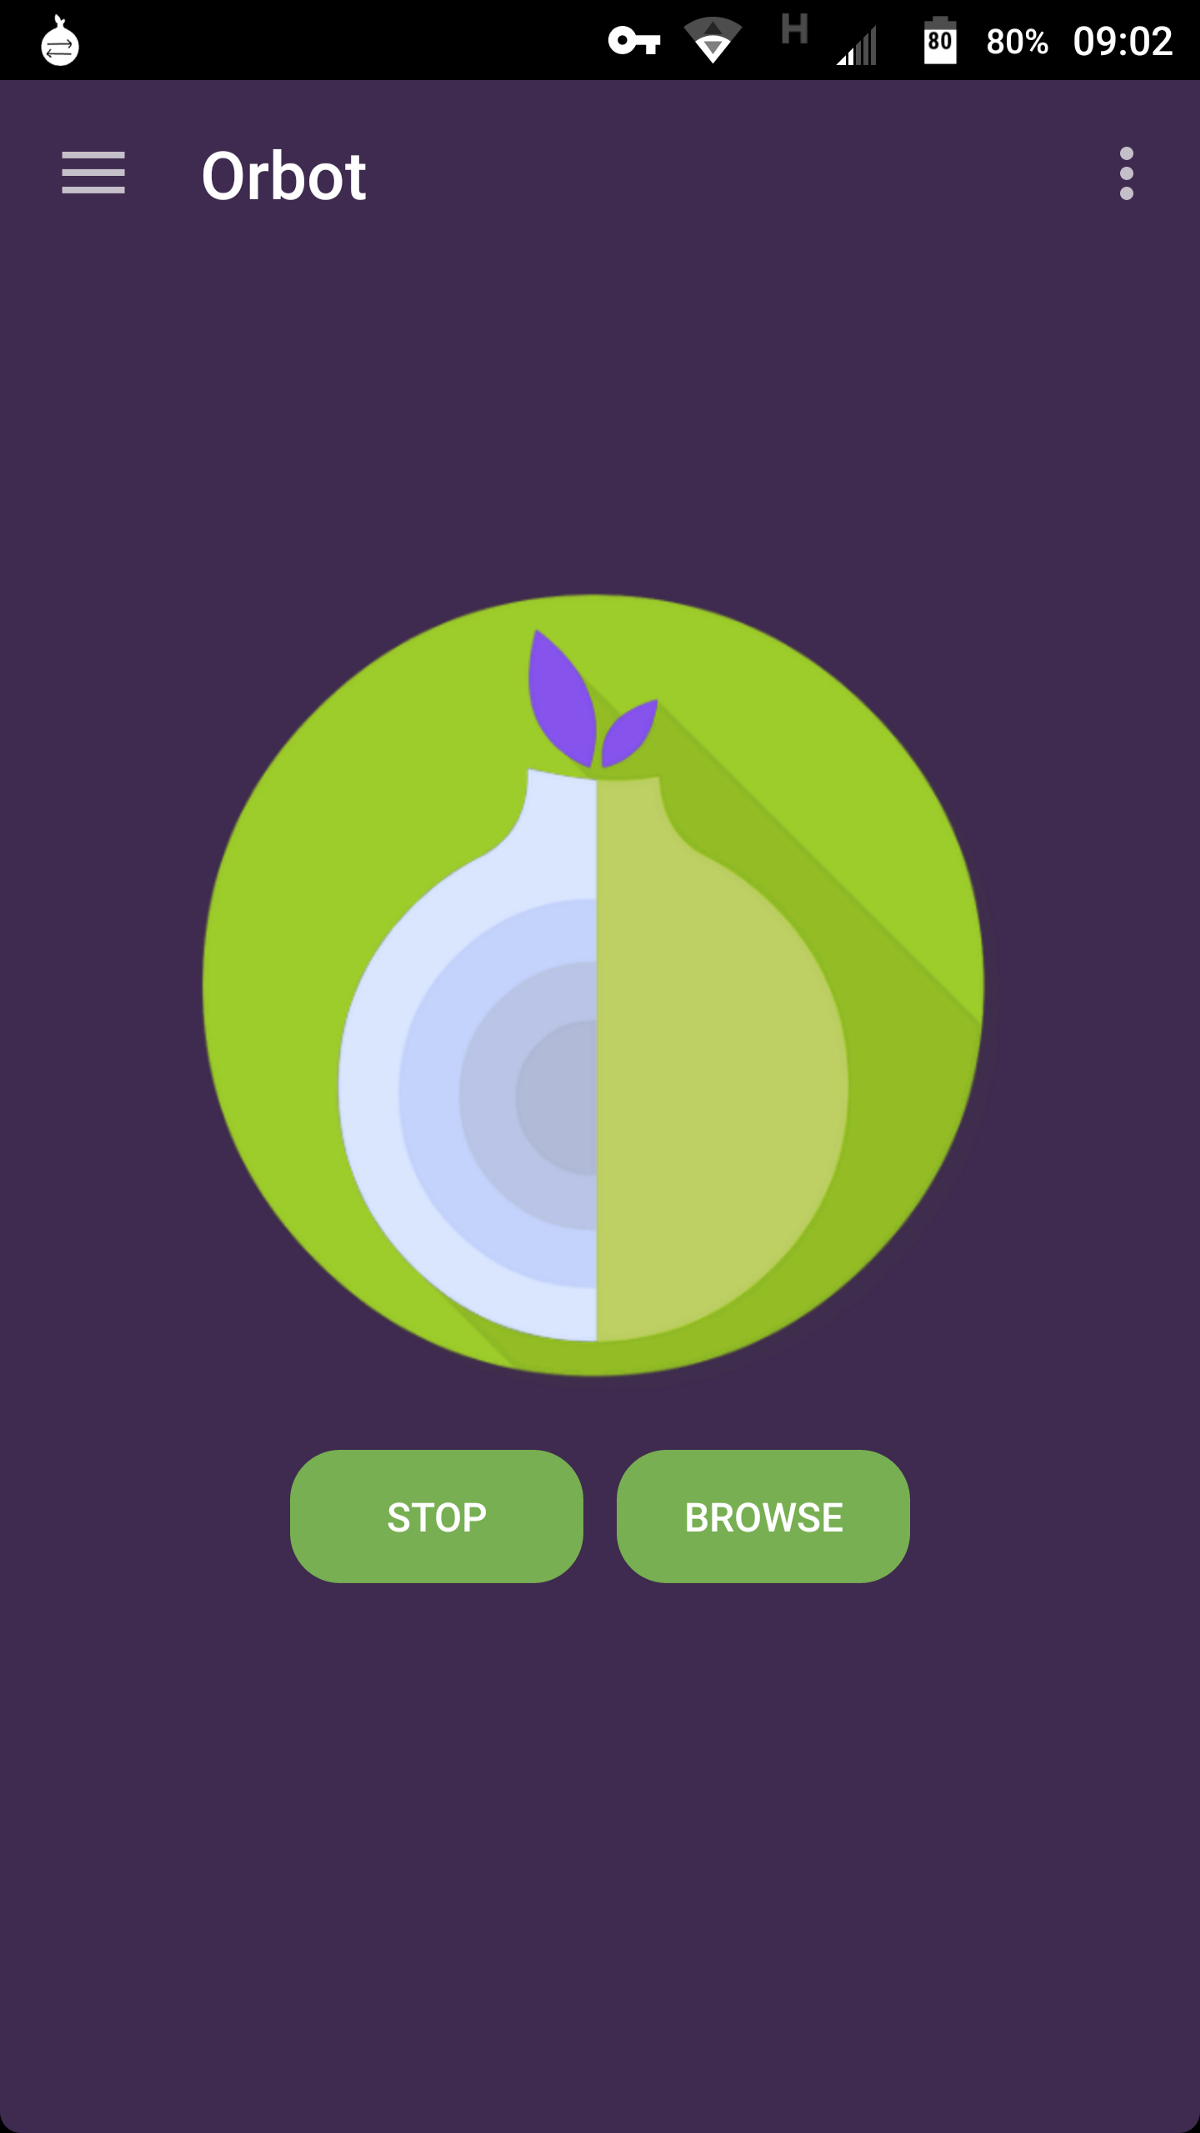 Tor browser android orbot hydraruzxpnew4af tor browser hosts gydra